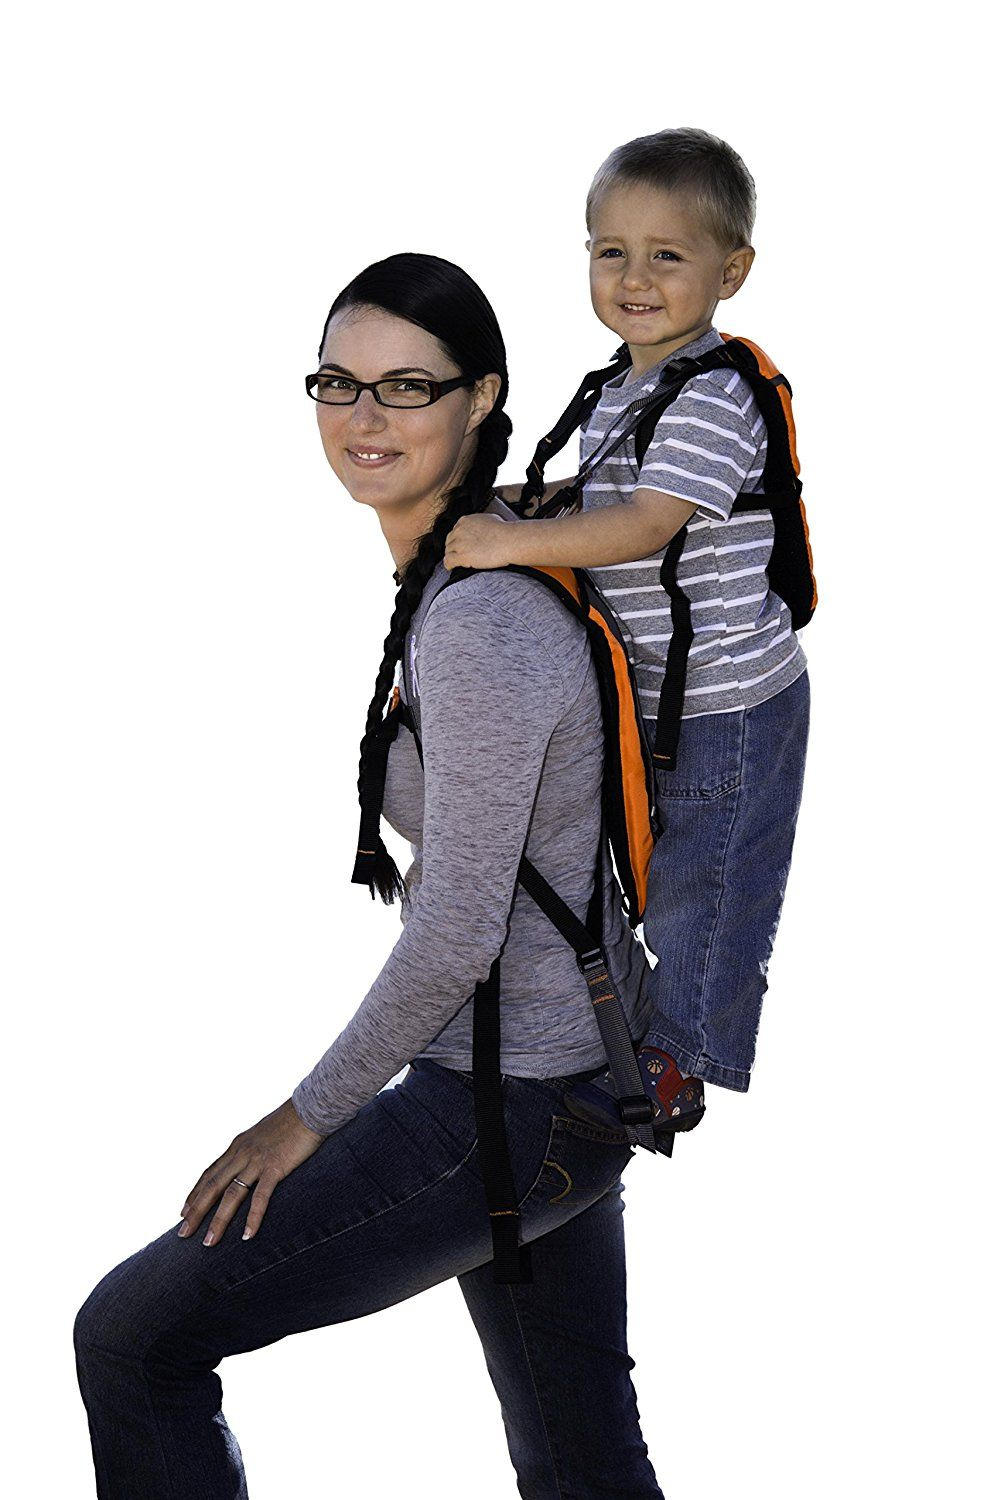 333c0057634 Piggyback Rider Explorer Model - Standing Child Toddler Carrier Backpack  for Hiking Trails -- Learn more by visiting the image link.